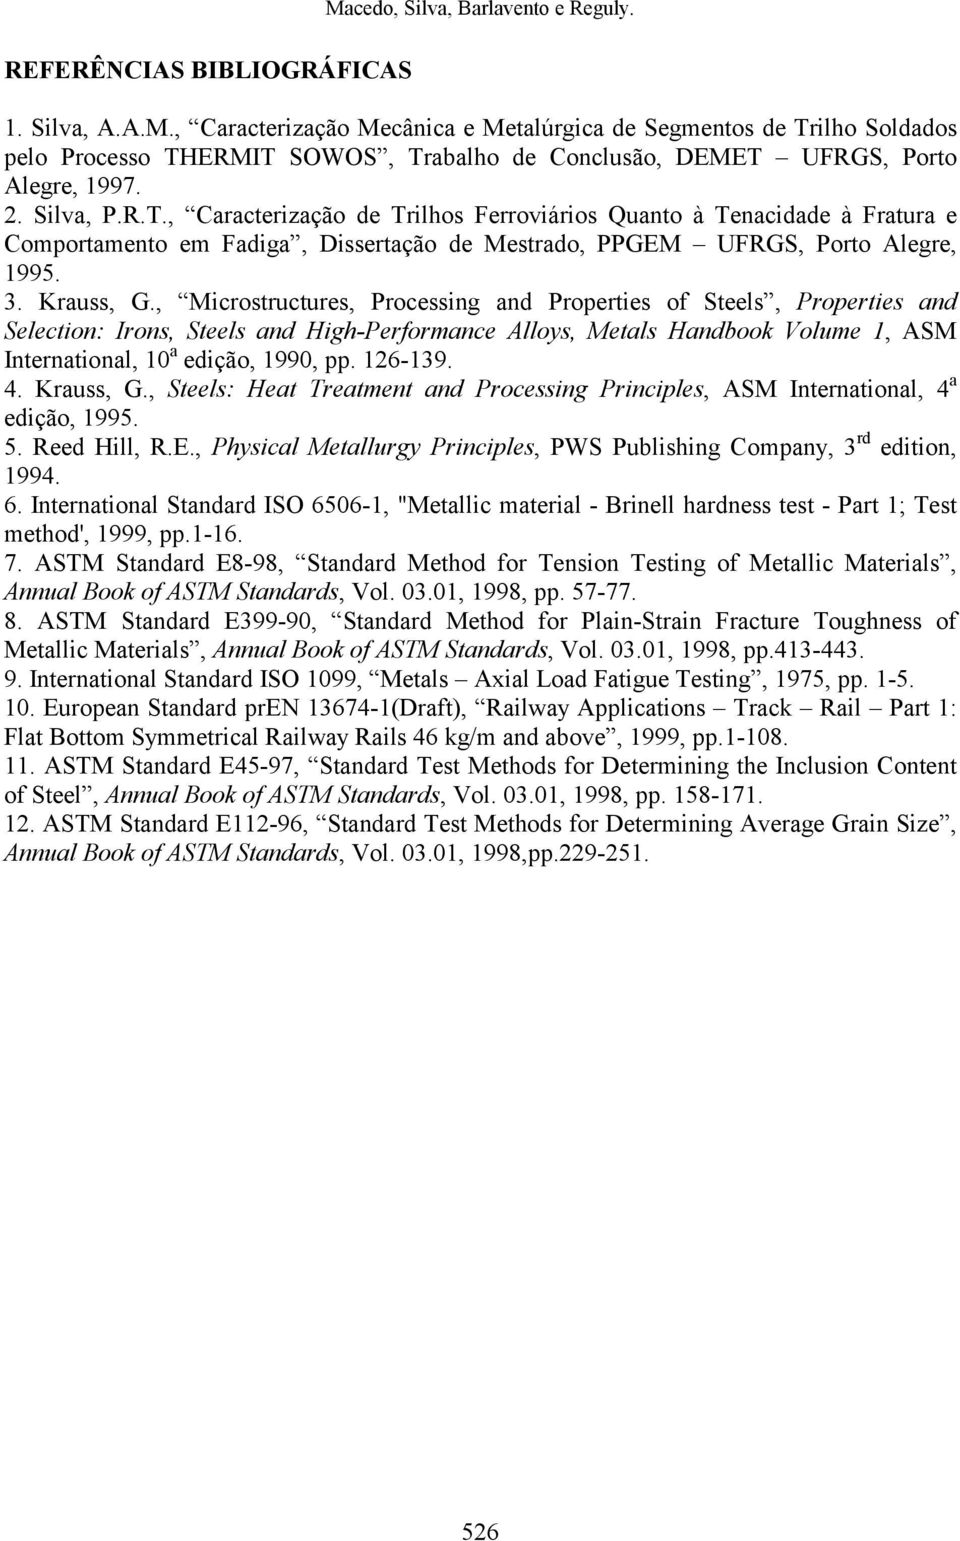 , Microstructures, Processing and Properties of Steels, Properties and Selection: Irons, Steels and High-Performance Alloys, Metals Handbook Volume 1, ASM International, 10 a edição, 1990, pp.